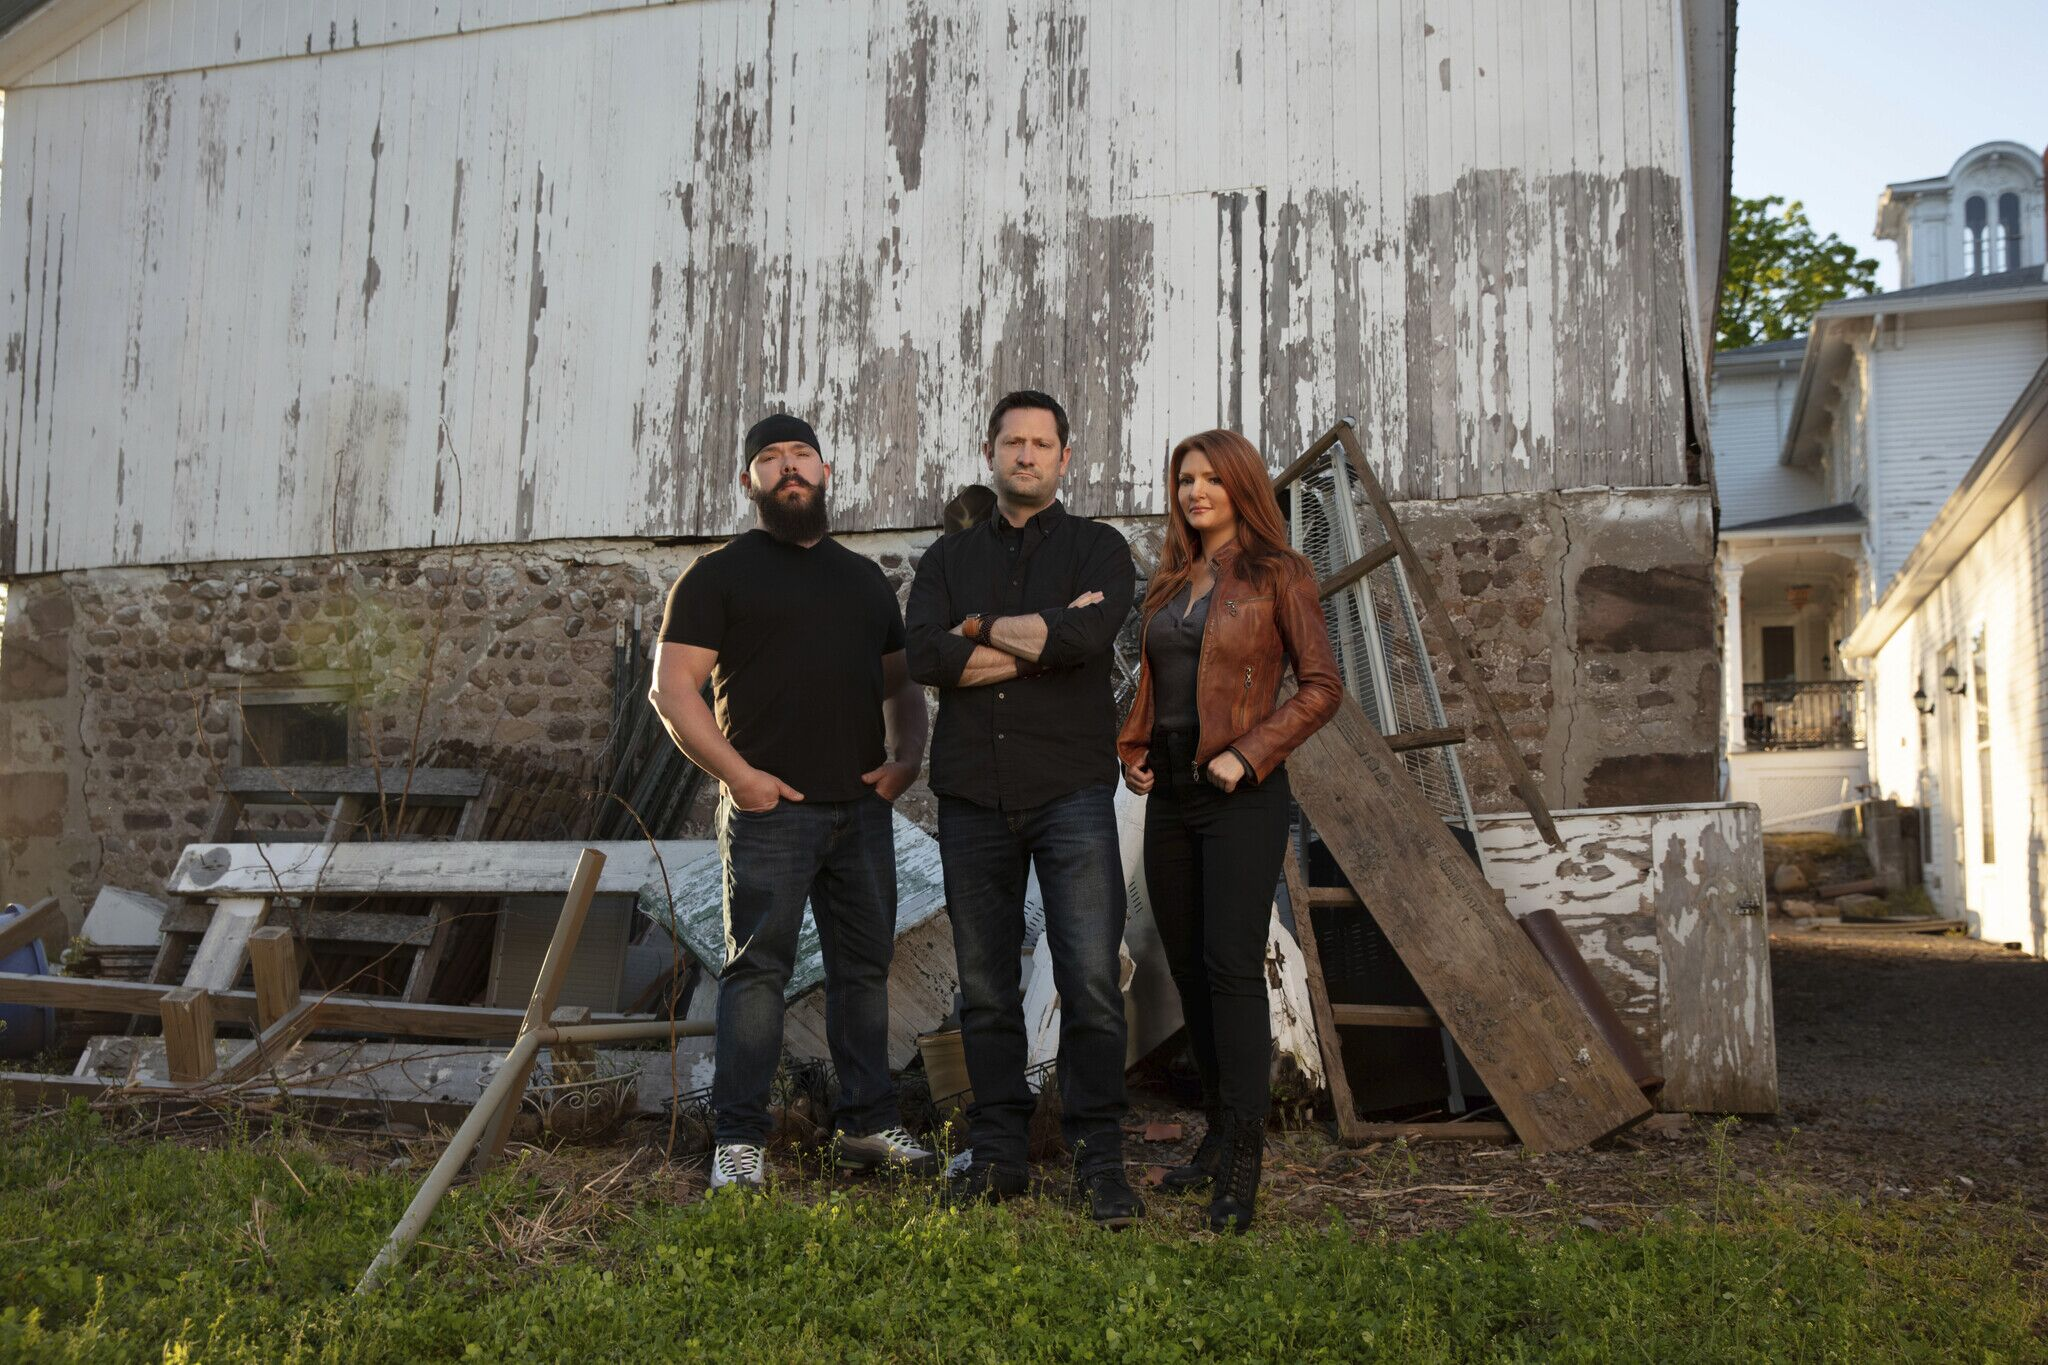 A & E conjures up Ghost Hunters and other paranormal series